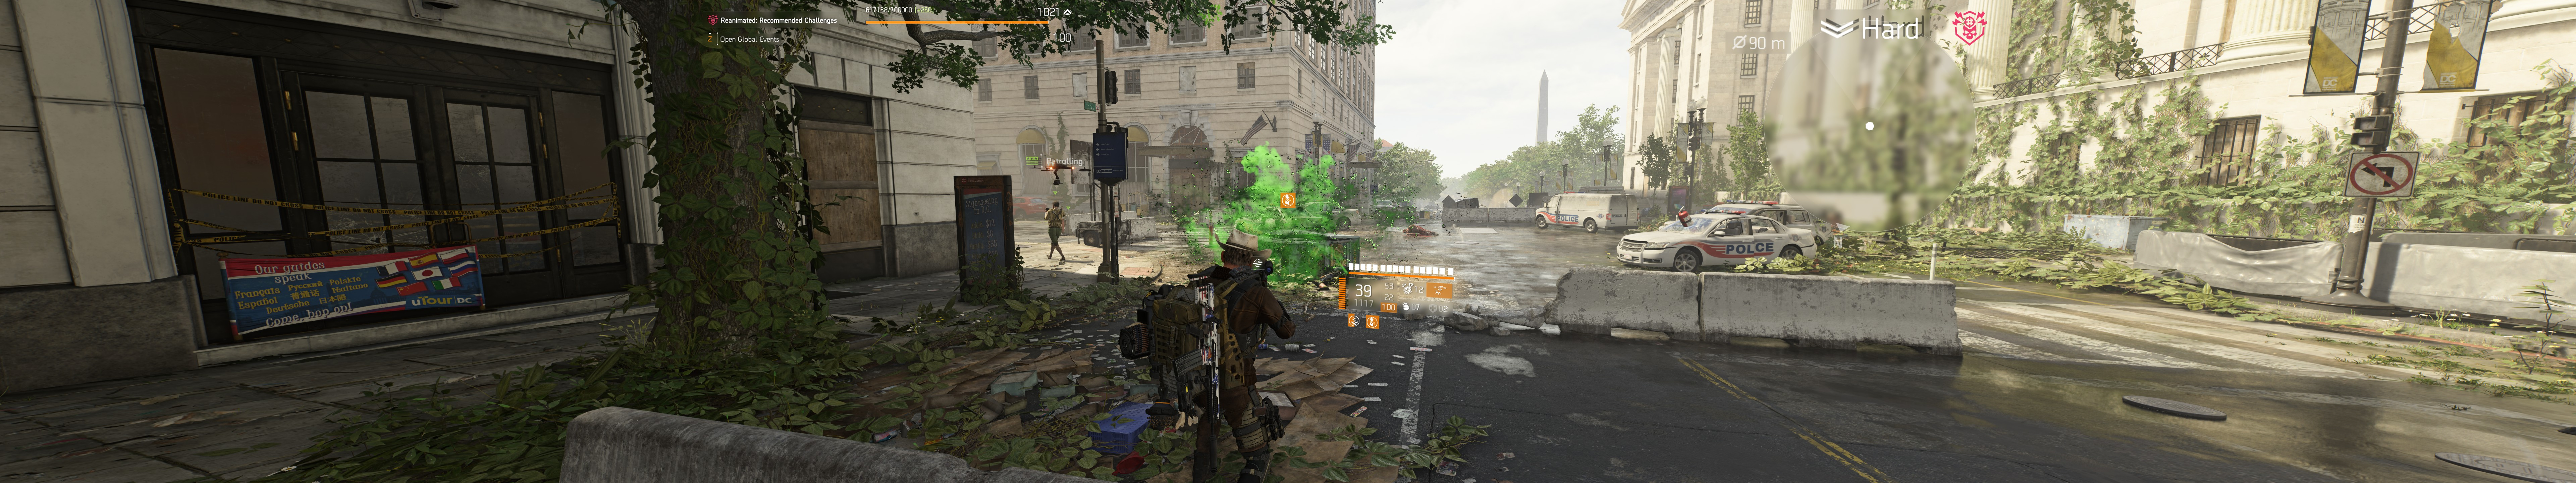 Tom Clancy's The Division® 22020-8-23-20-33-31.jpg